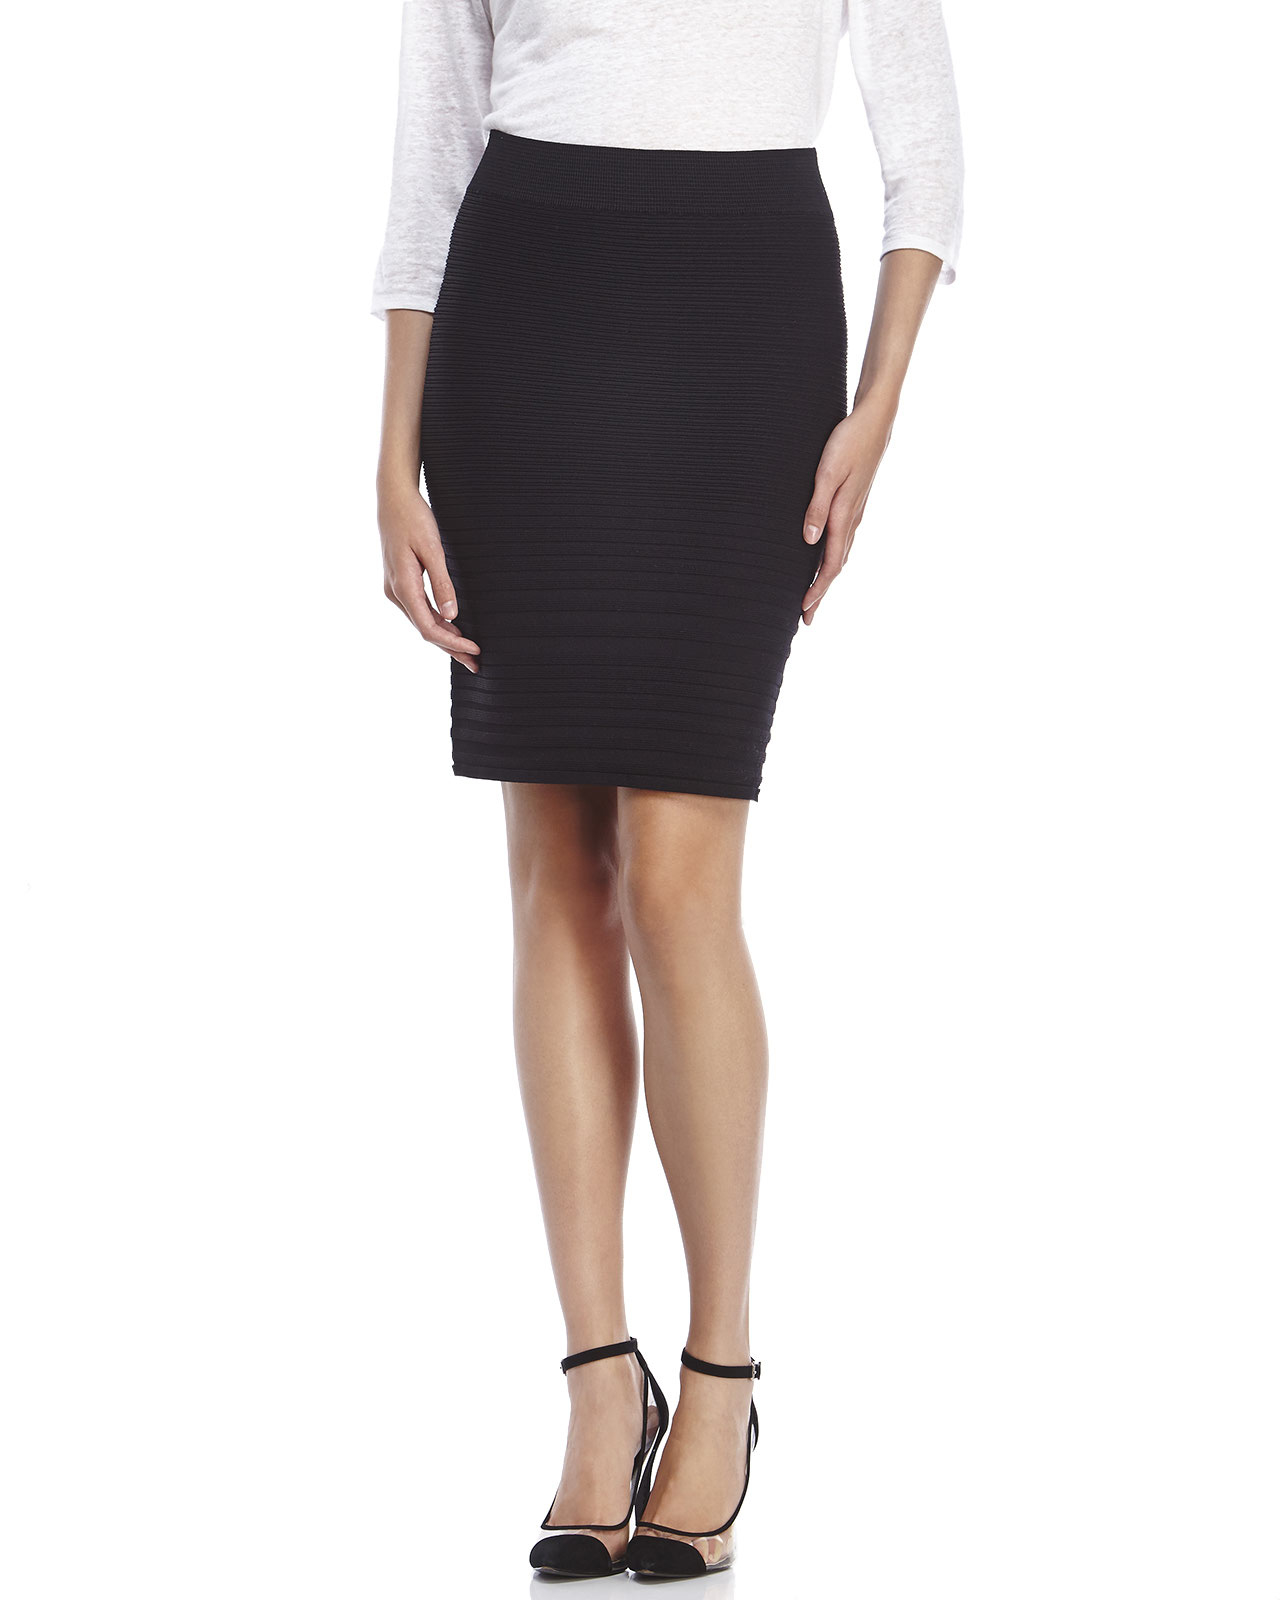 dce822d8e3 Ivanka Trump Ribbed Pencil Skirt in Black - Lyst